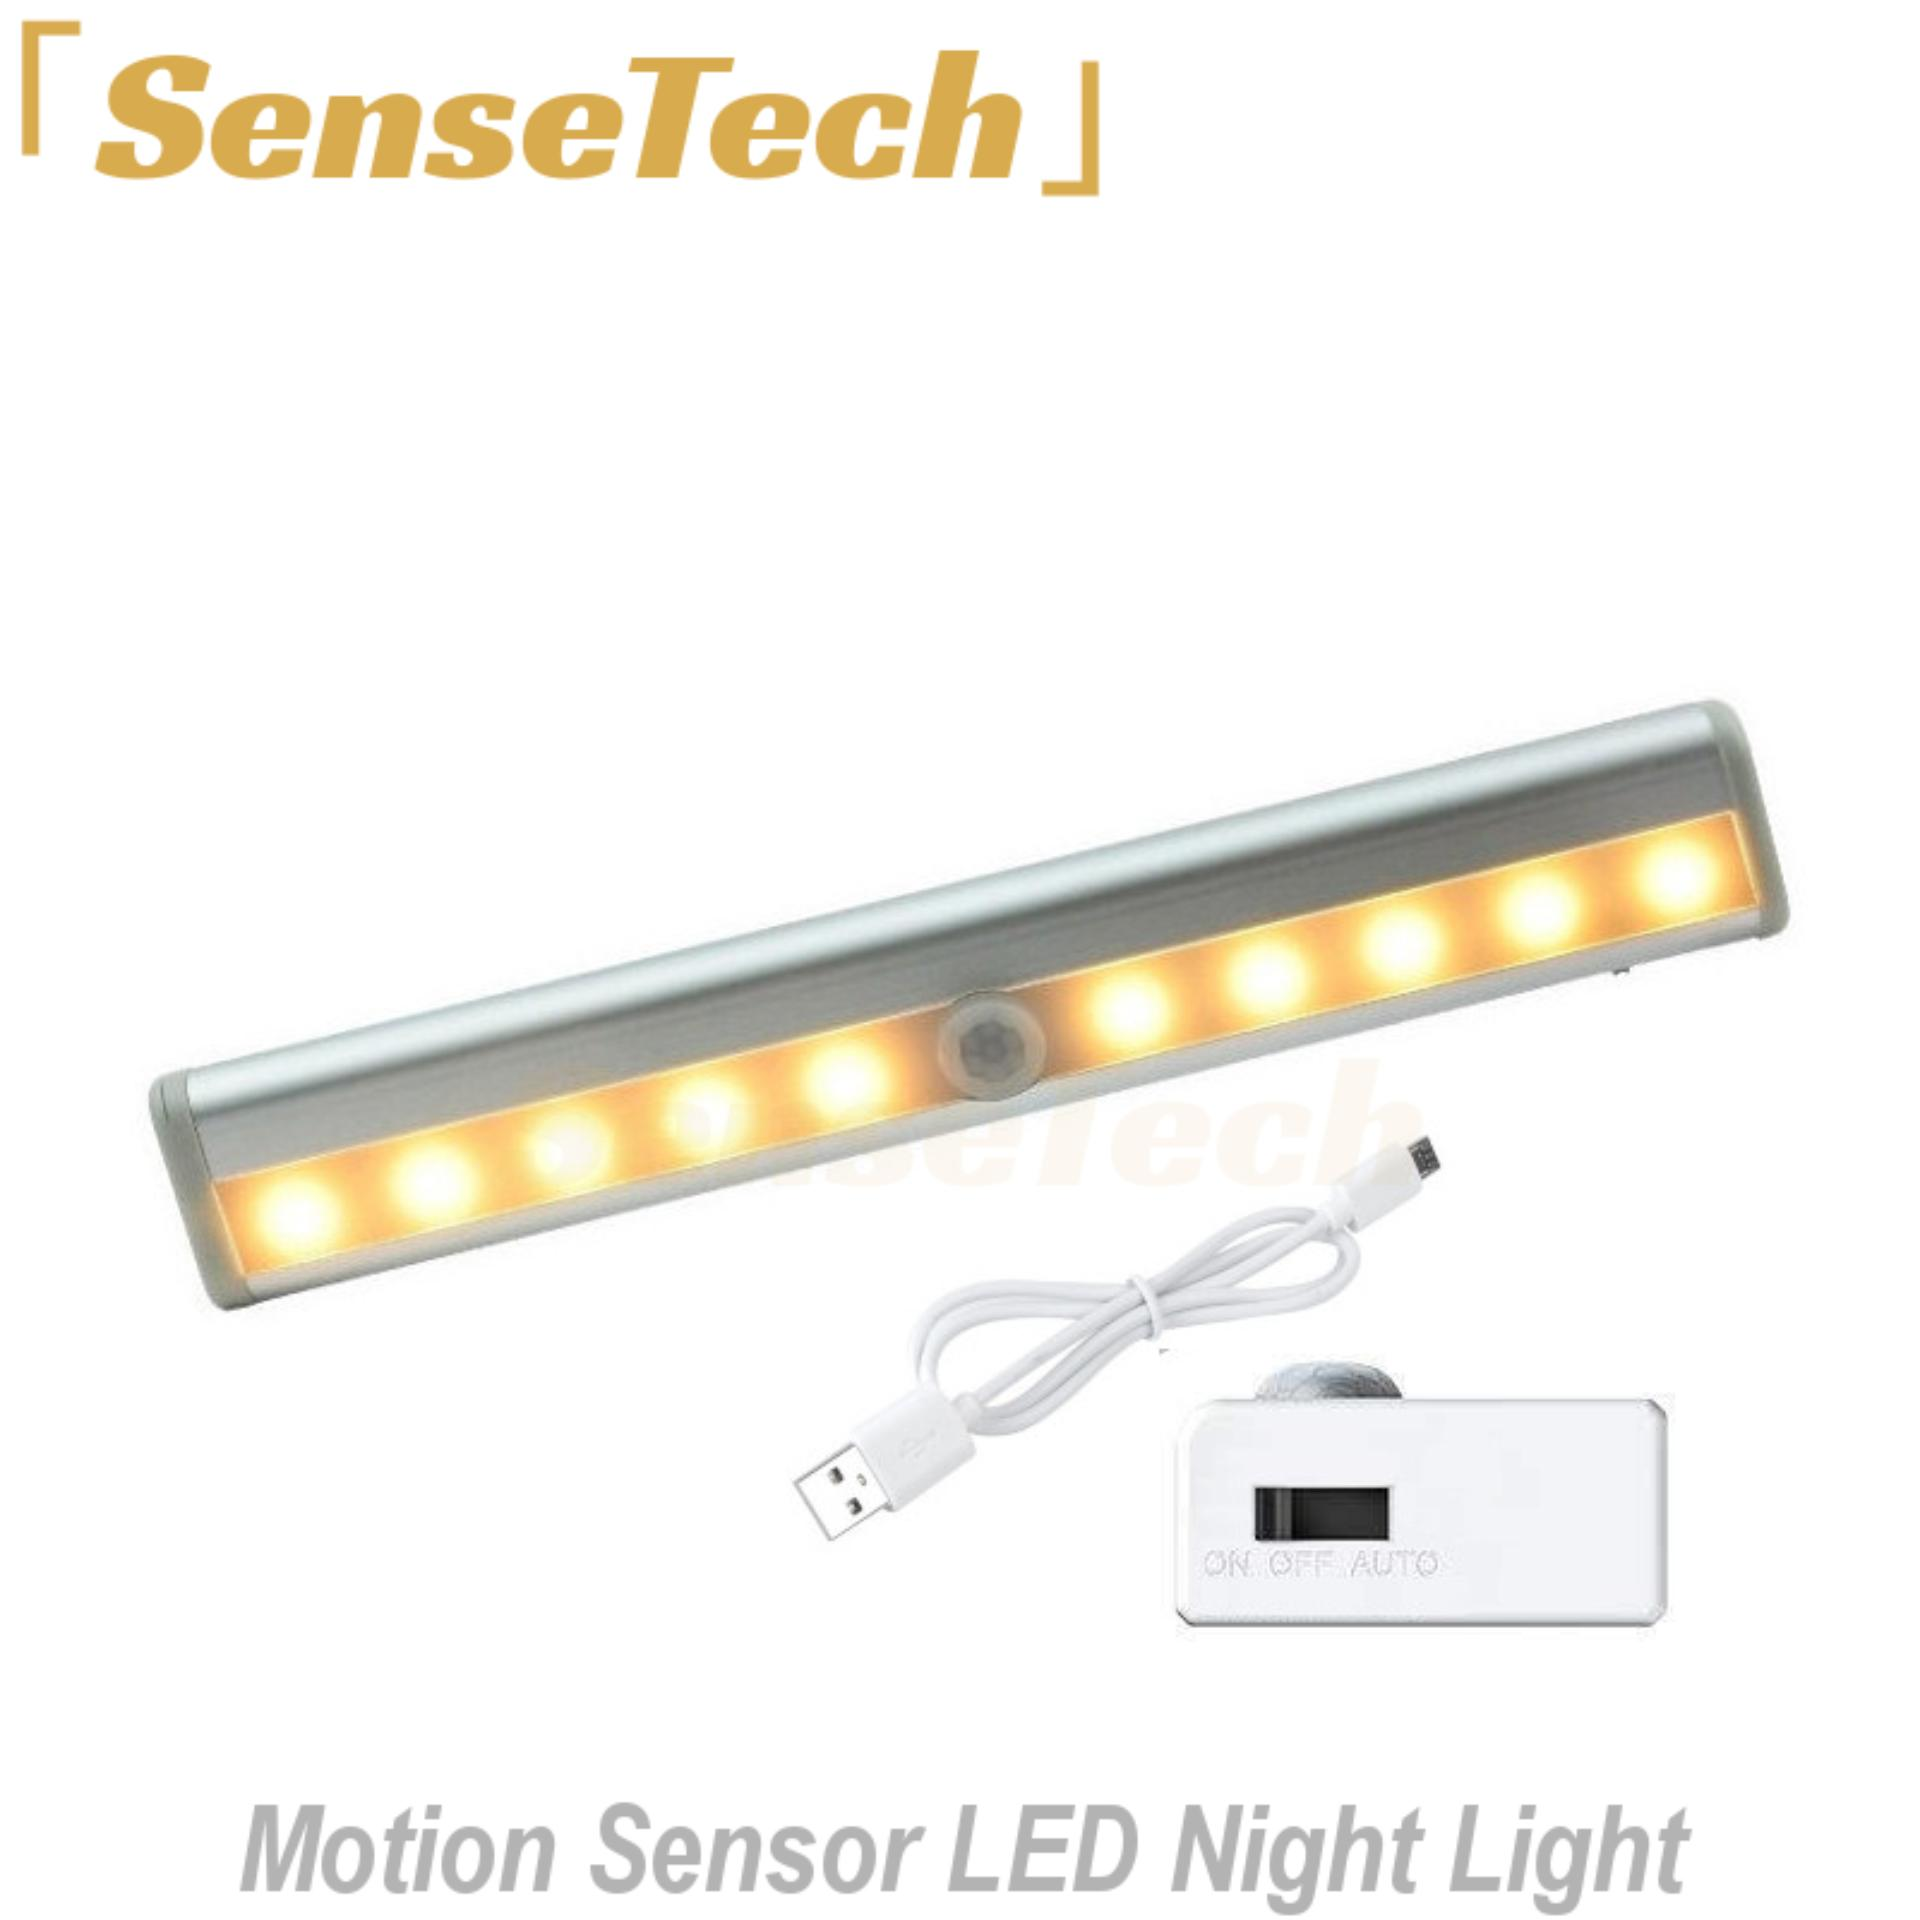 SenseTech LED Night Light with PIR Motion Sensor (Warm White - Rechargeable Model with Permanent On Switch - Slim)